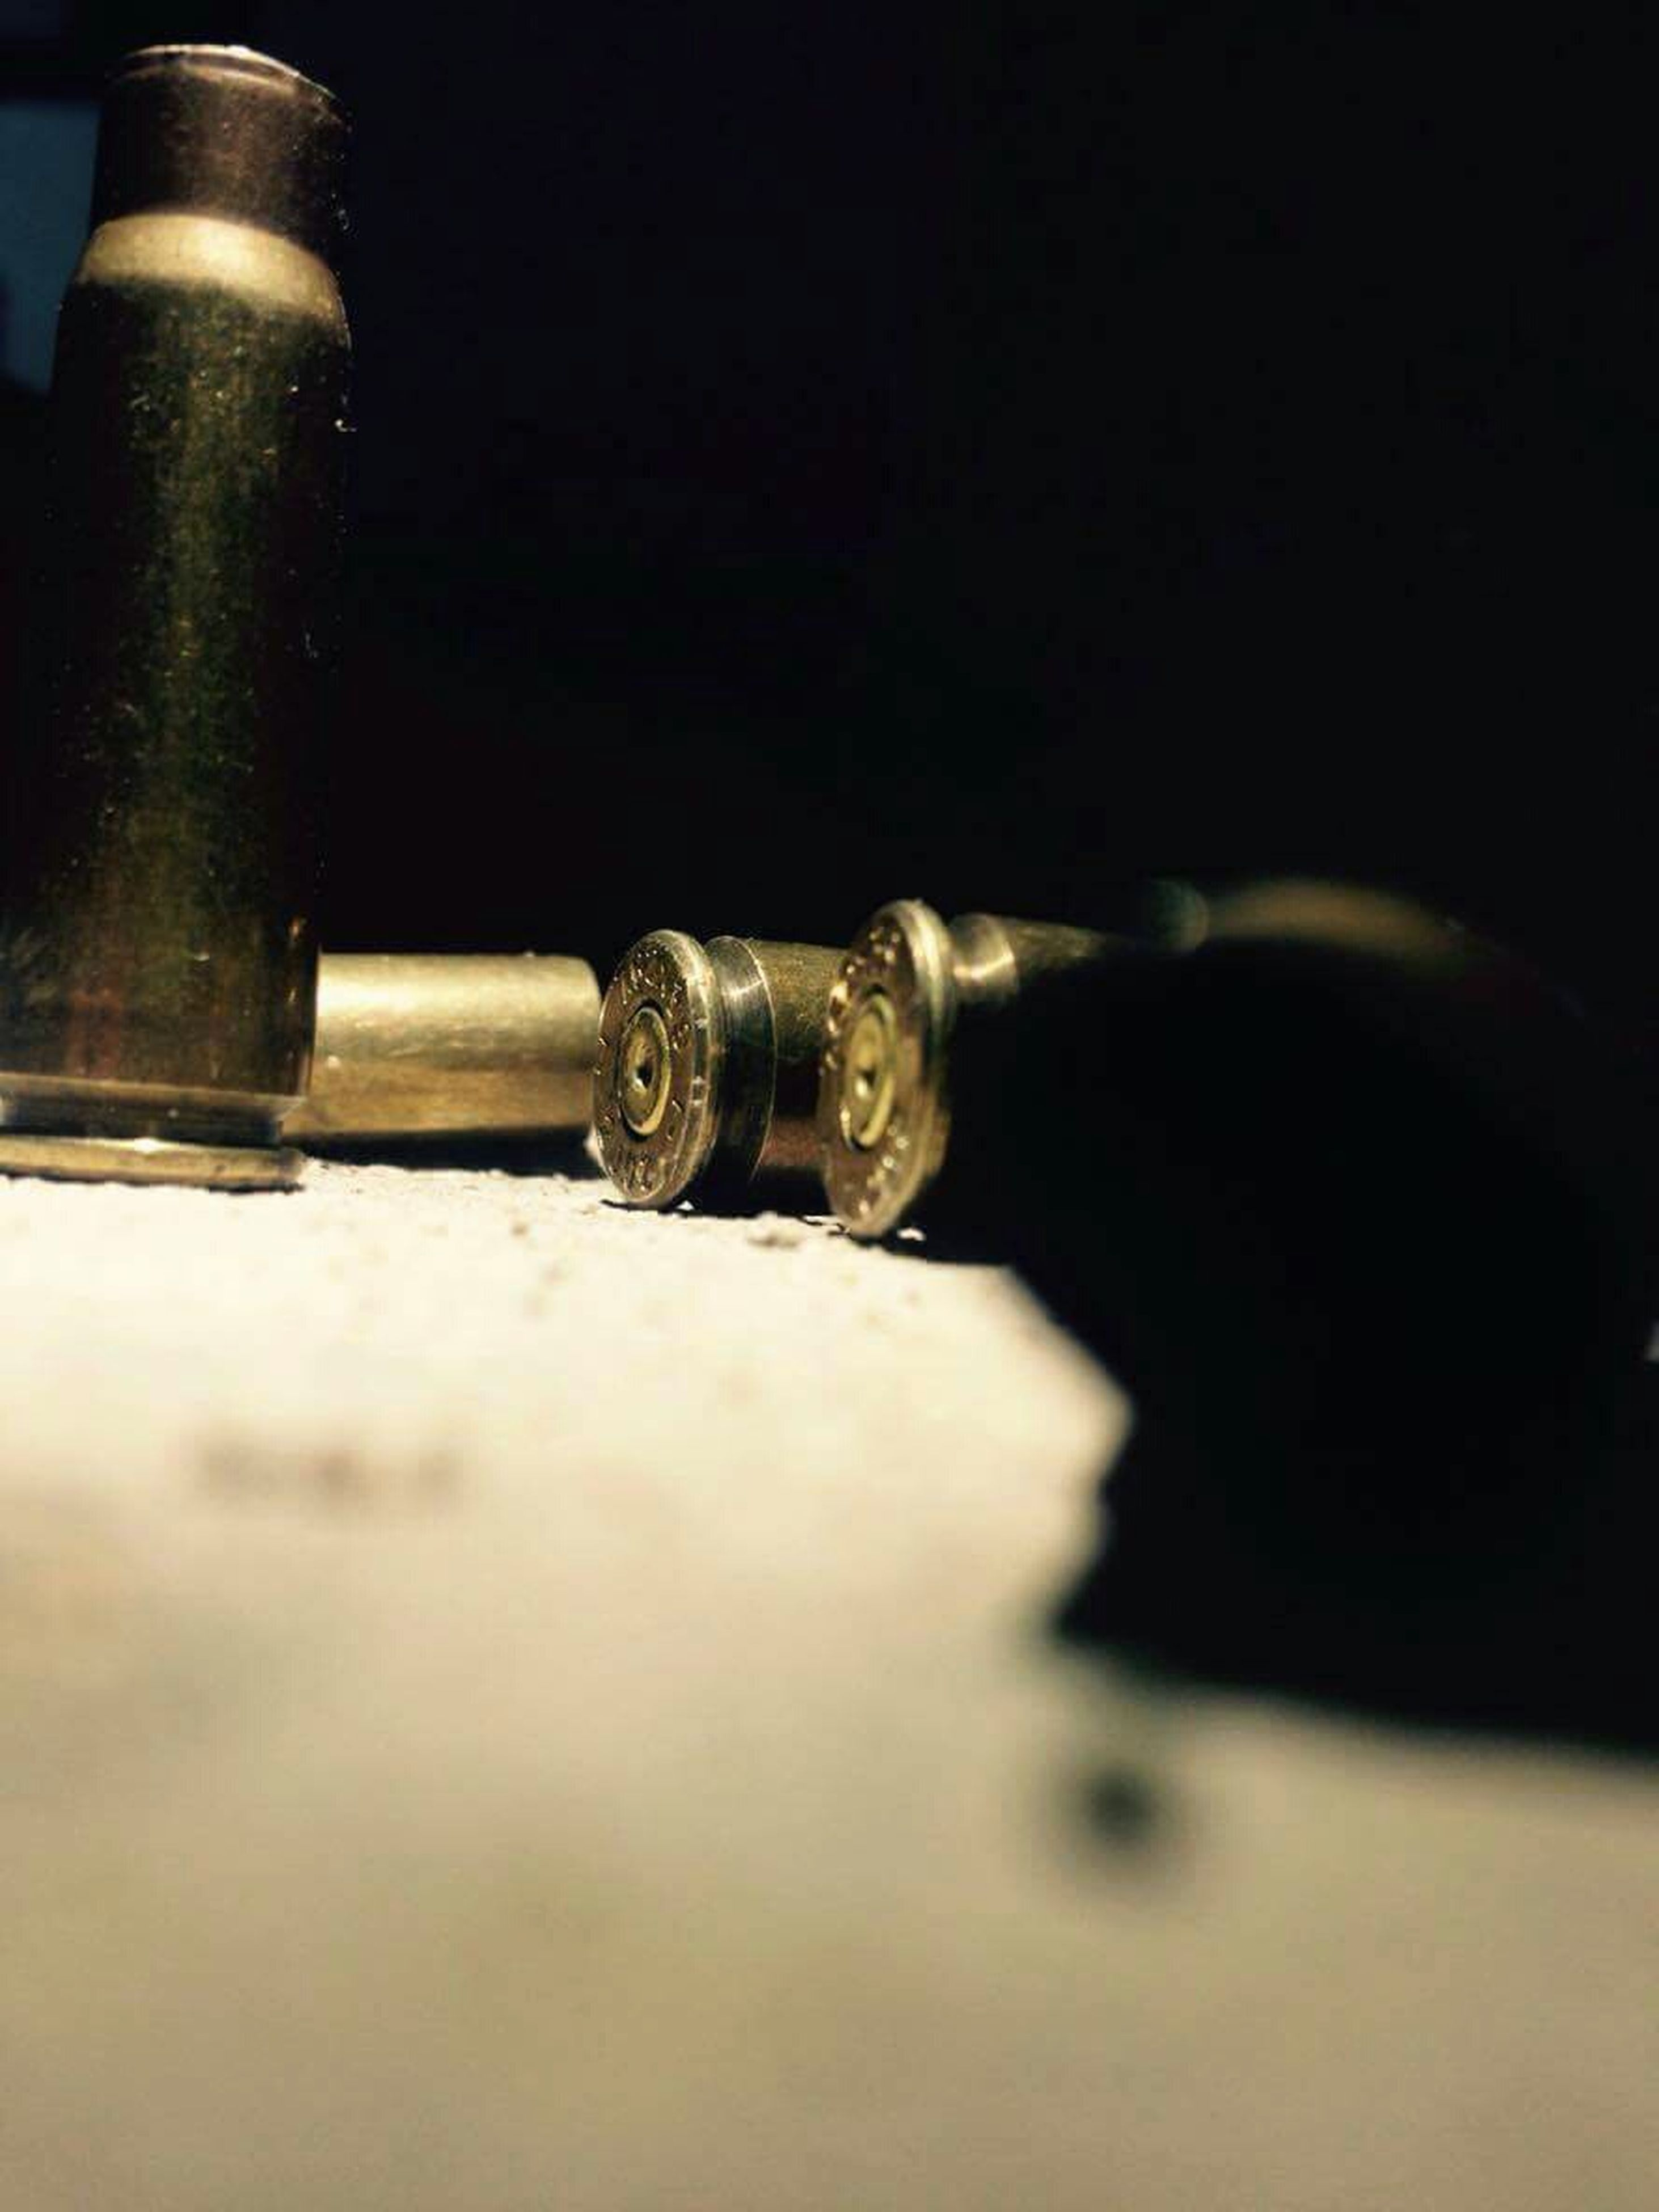 single object, selective focus, metal, close-up, man made object, supported, studio shot